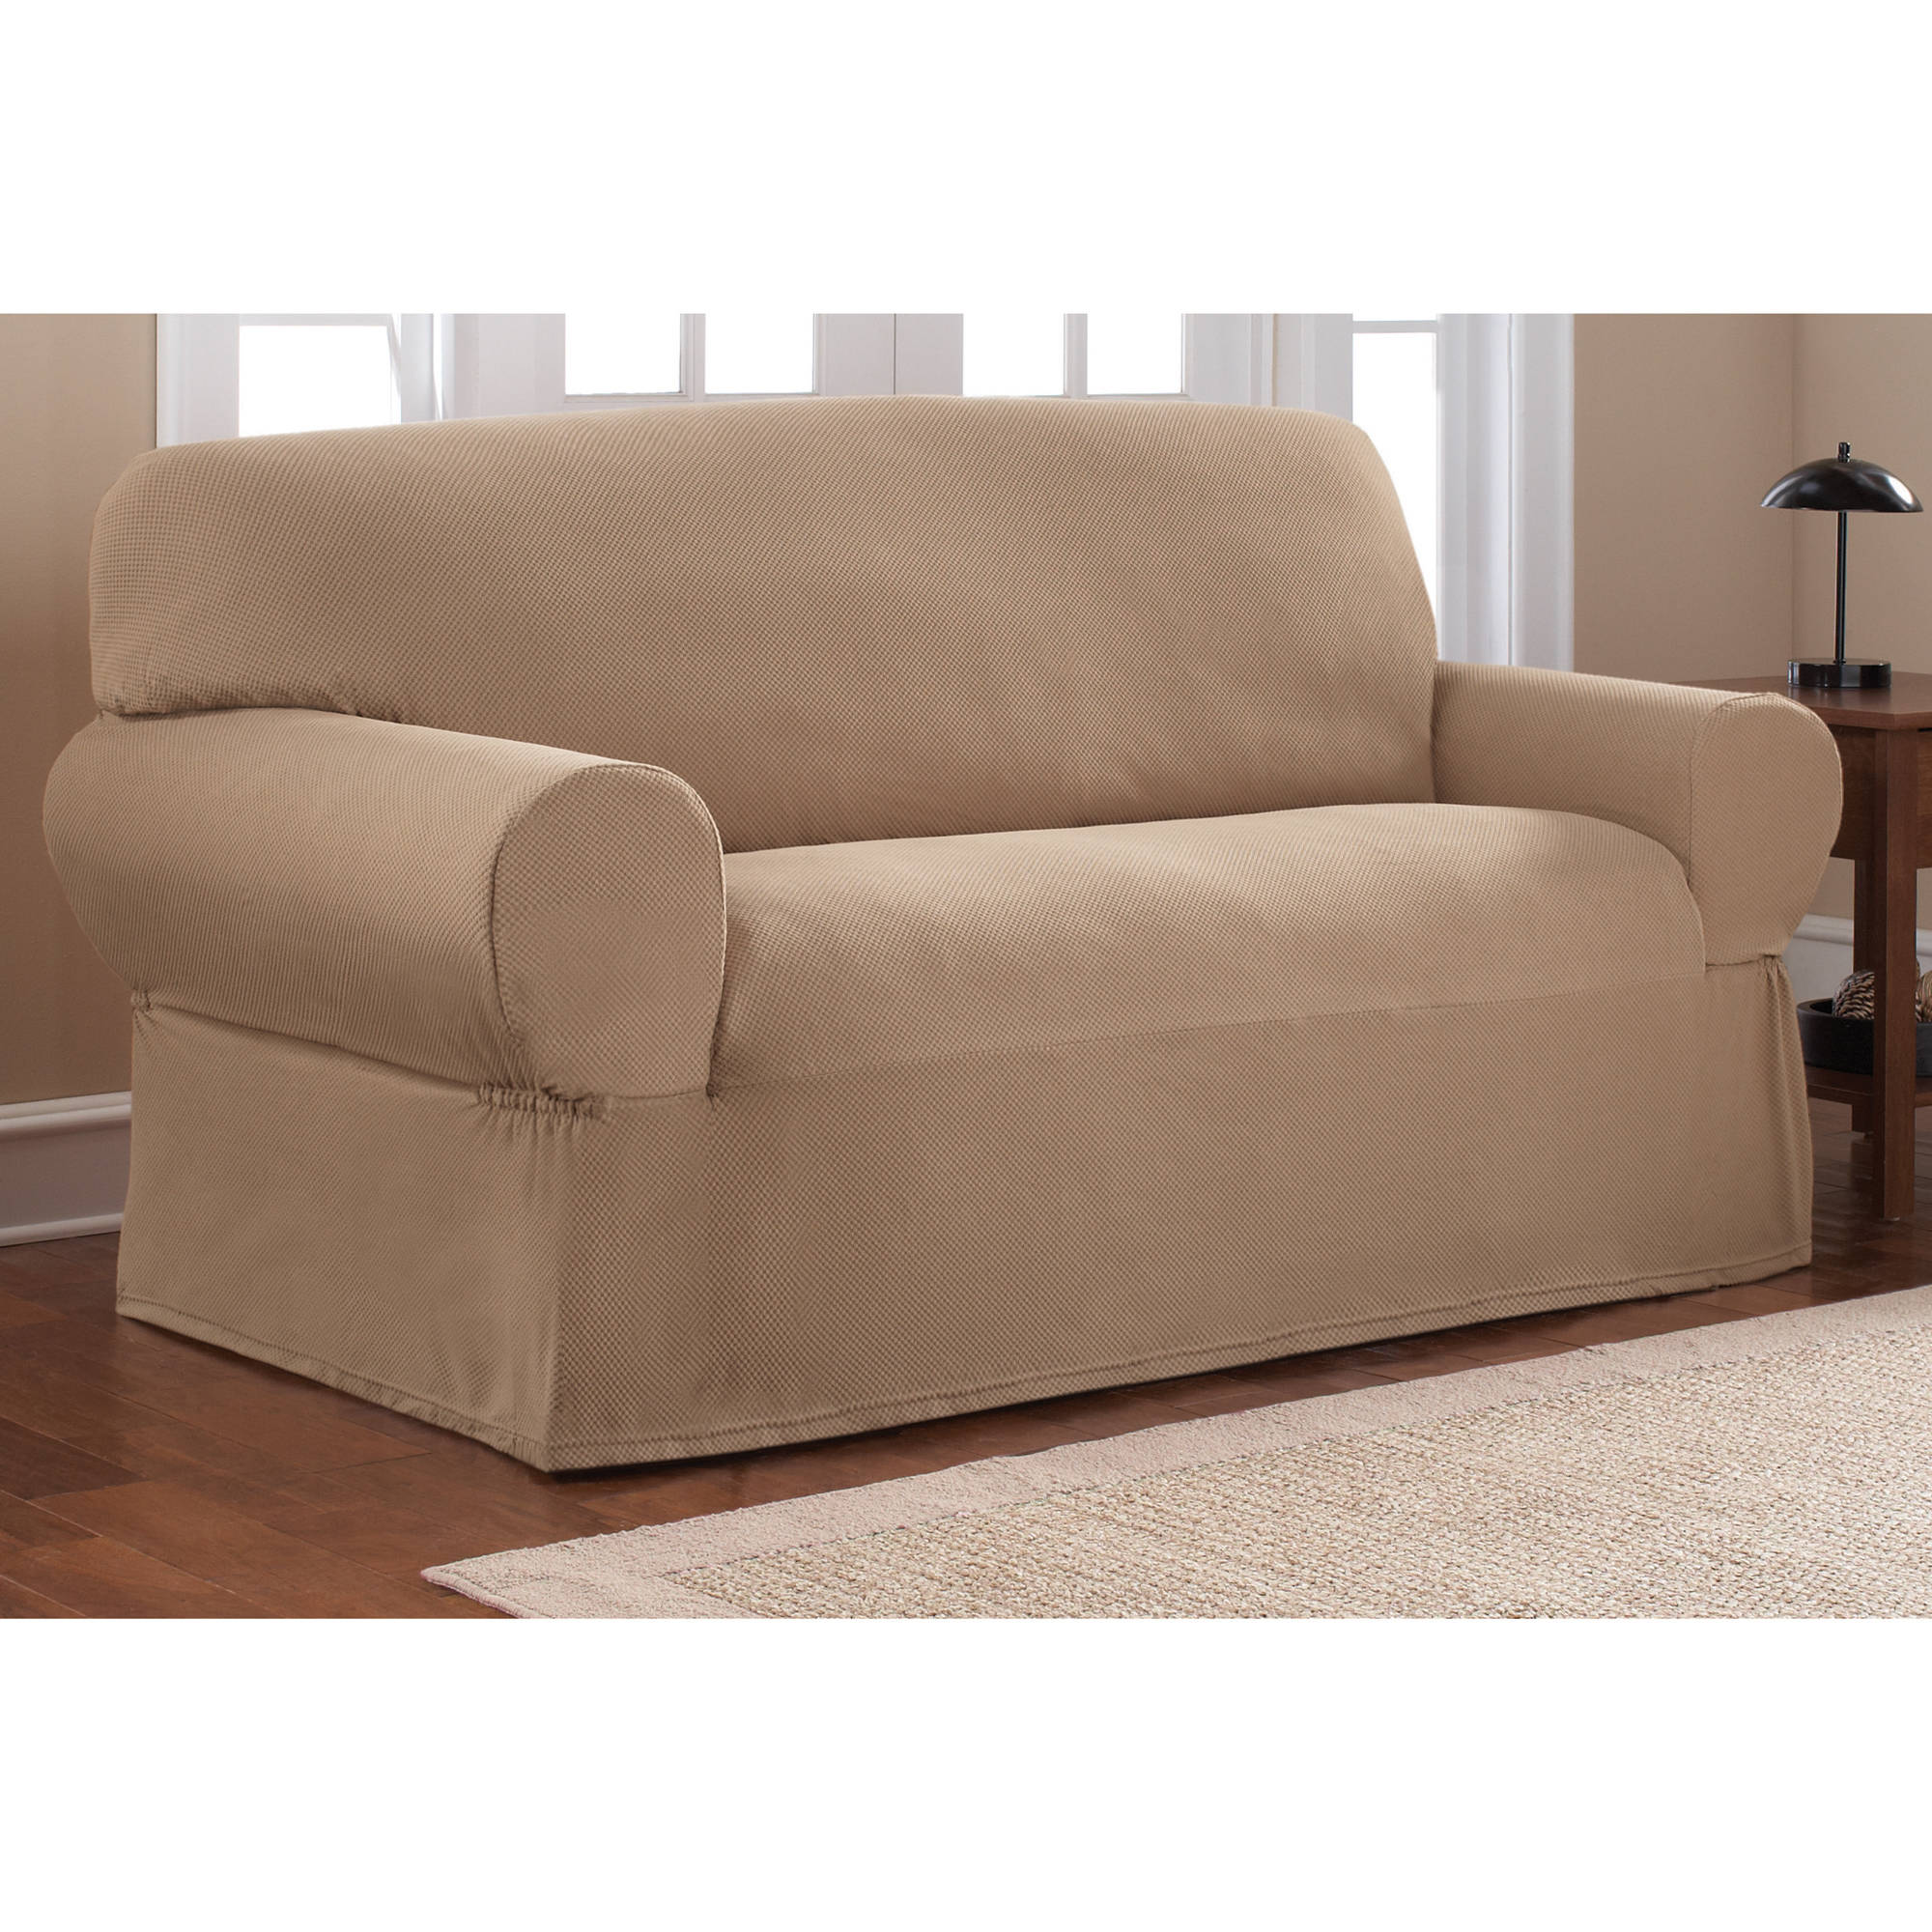 Photos of couch and loveseat covers mainstays 1-piece stretch fabric loveseat slipcover - walmart.com bfeaygk